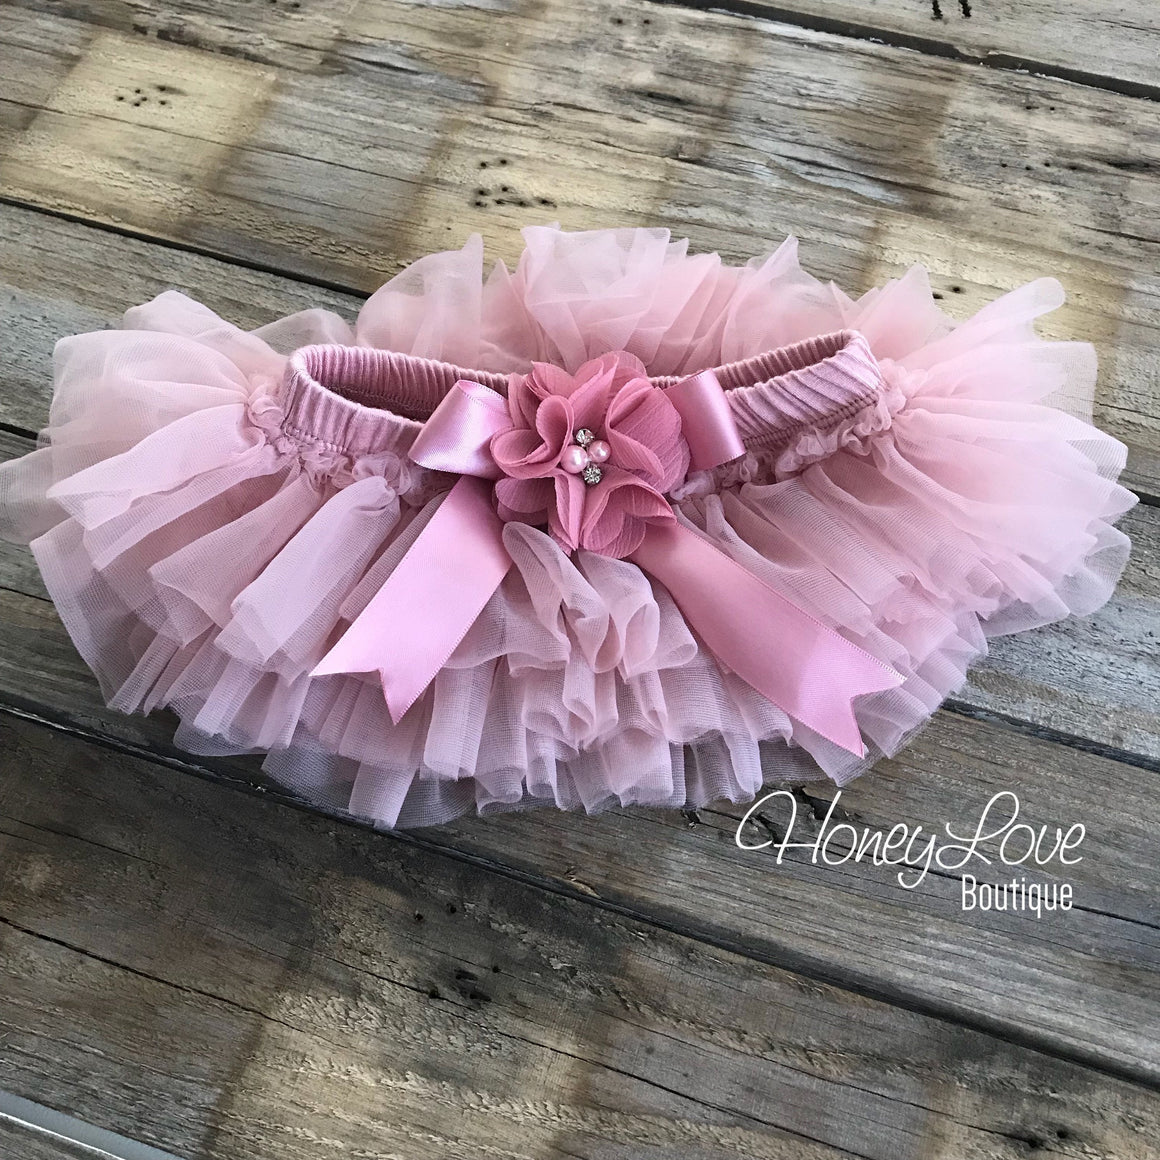 PERSONALIZED SET rose gold glitter bodysuit, dusty rose vintage pink ruffle tutu skirt bloomers, flower headband newborn baby girl outfit